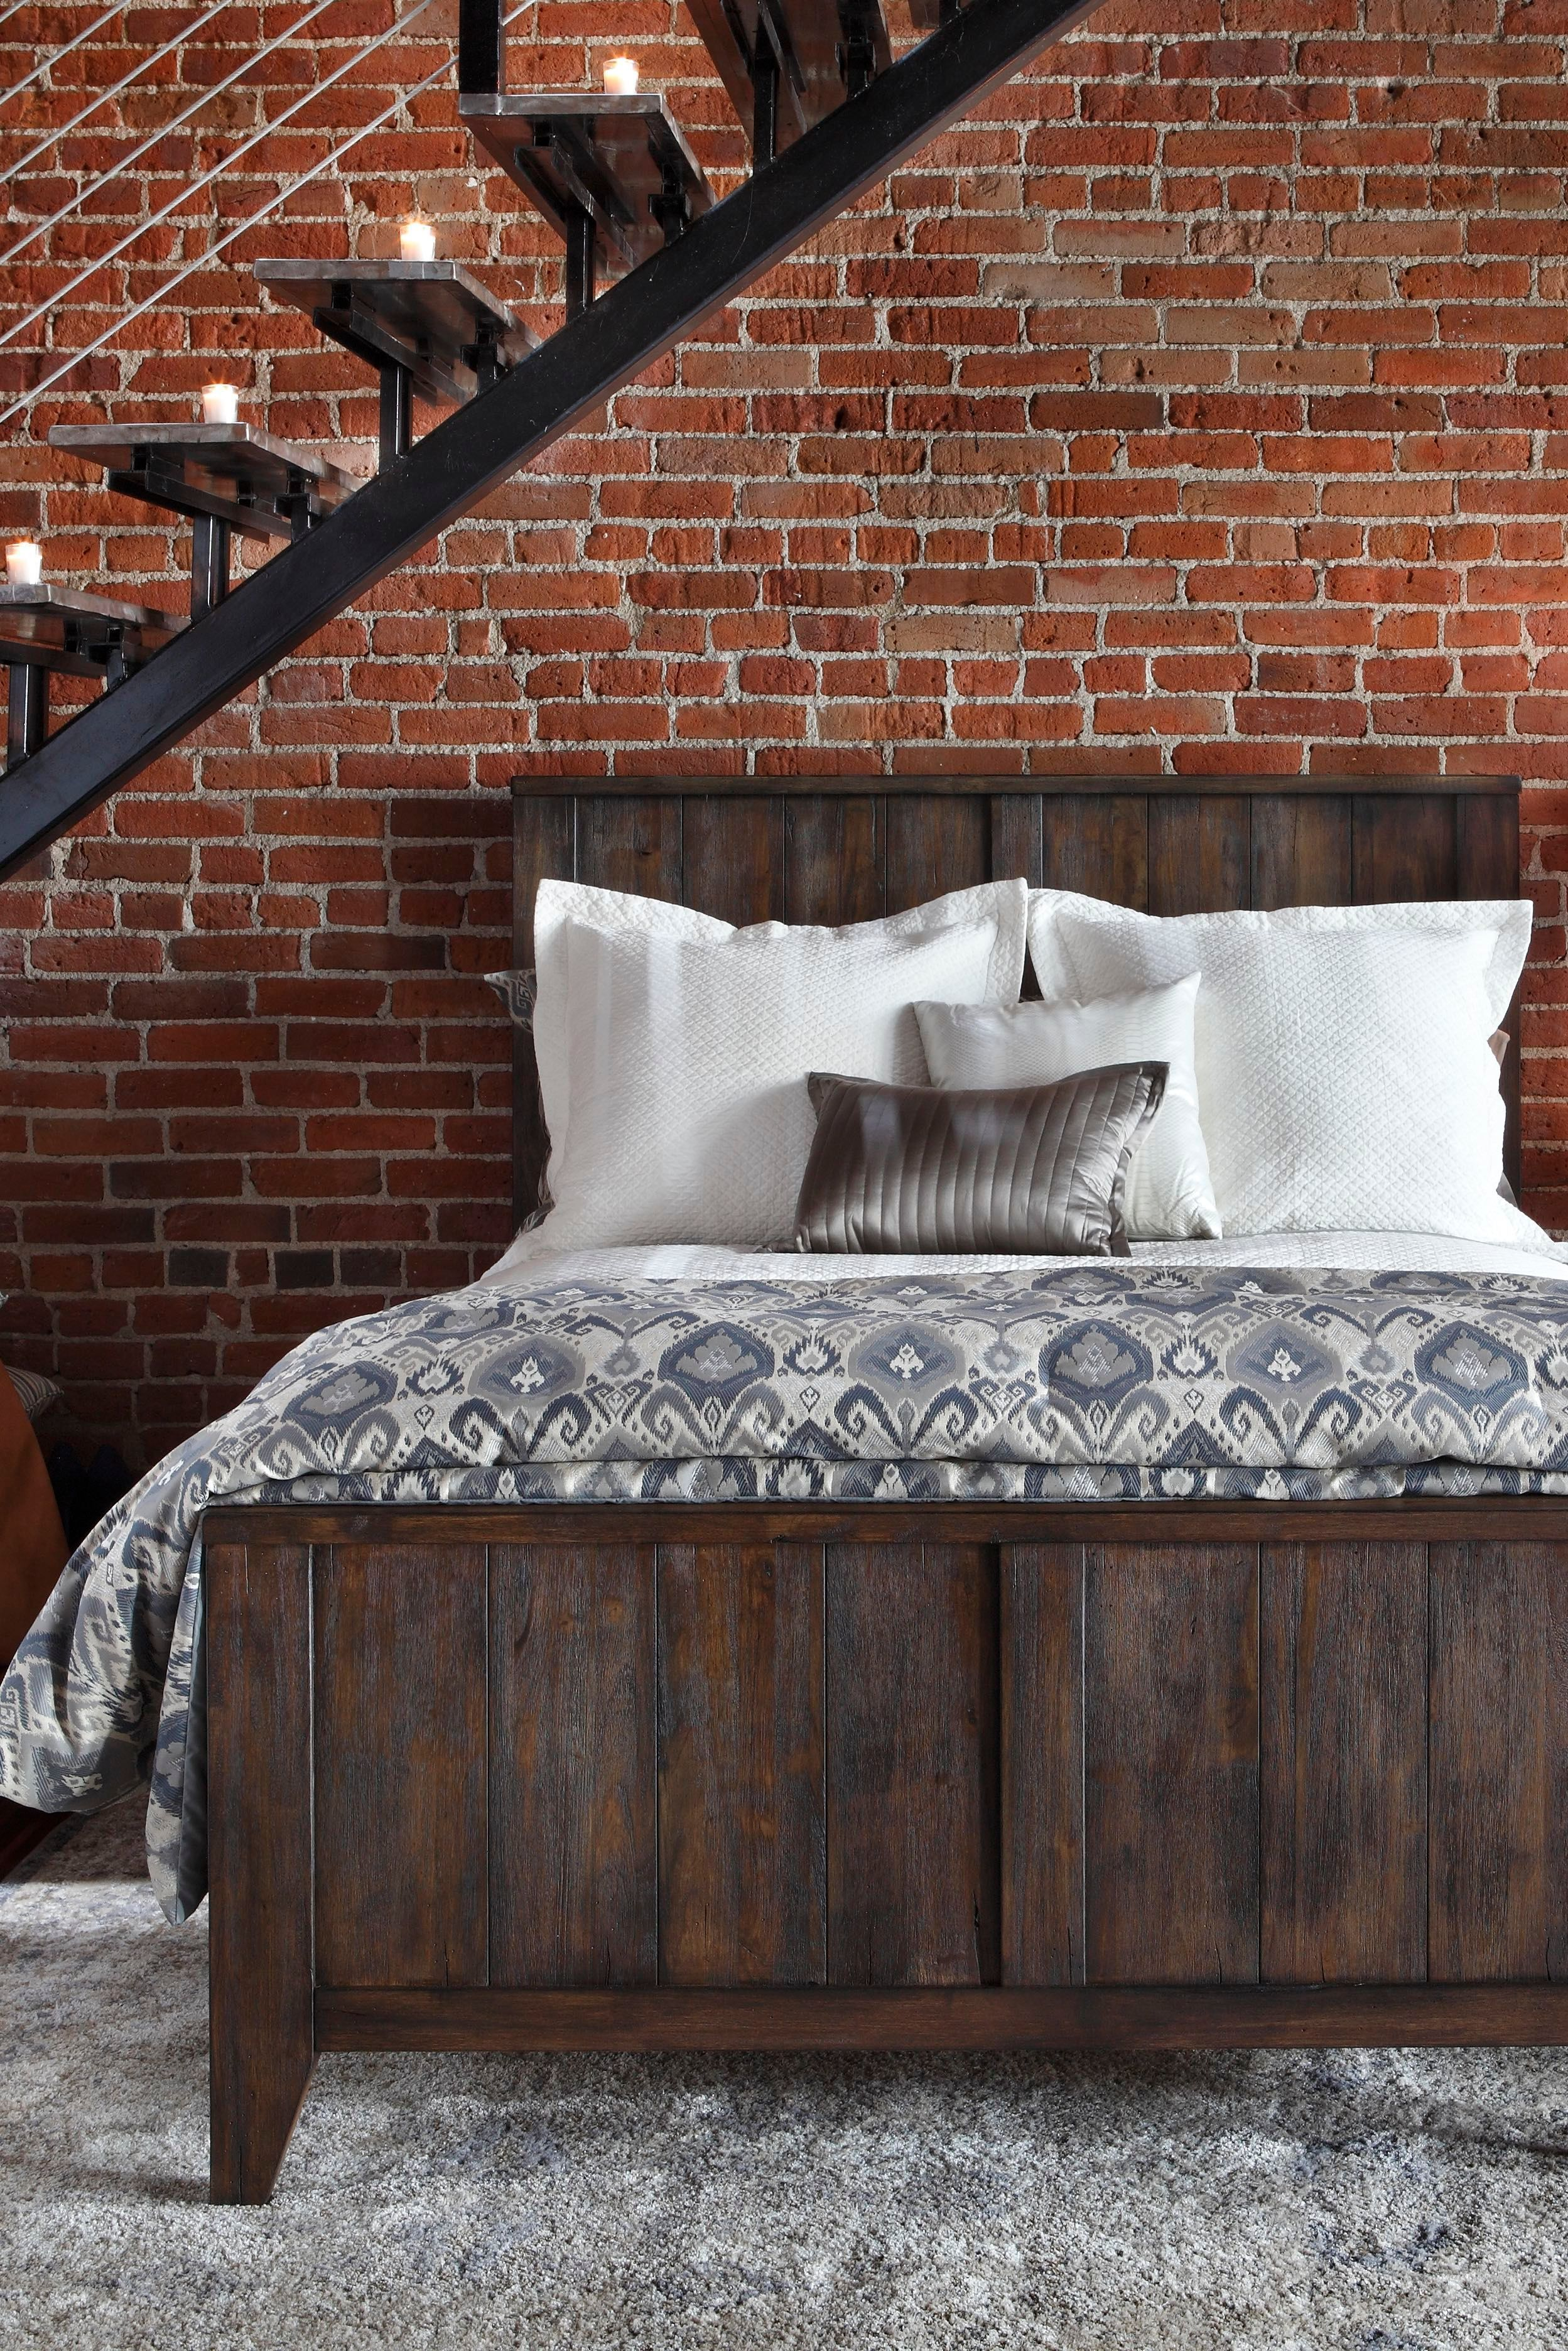 Glenwood Queen Panel Bed is just 499 during the Black